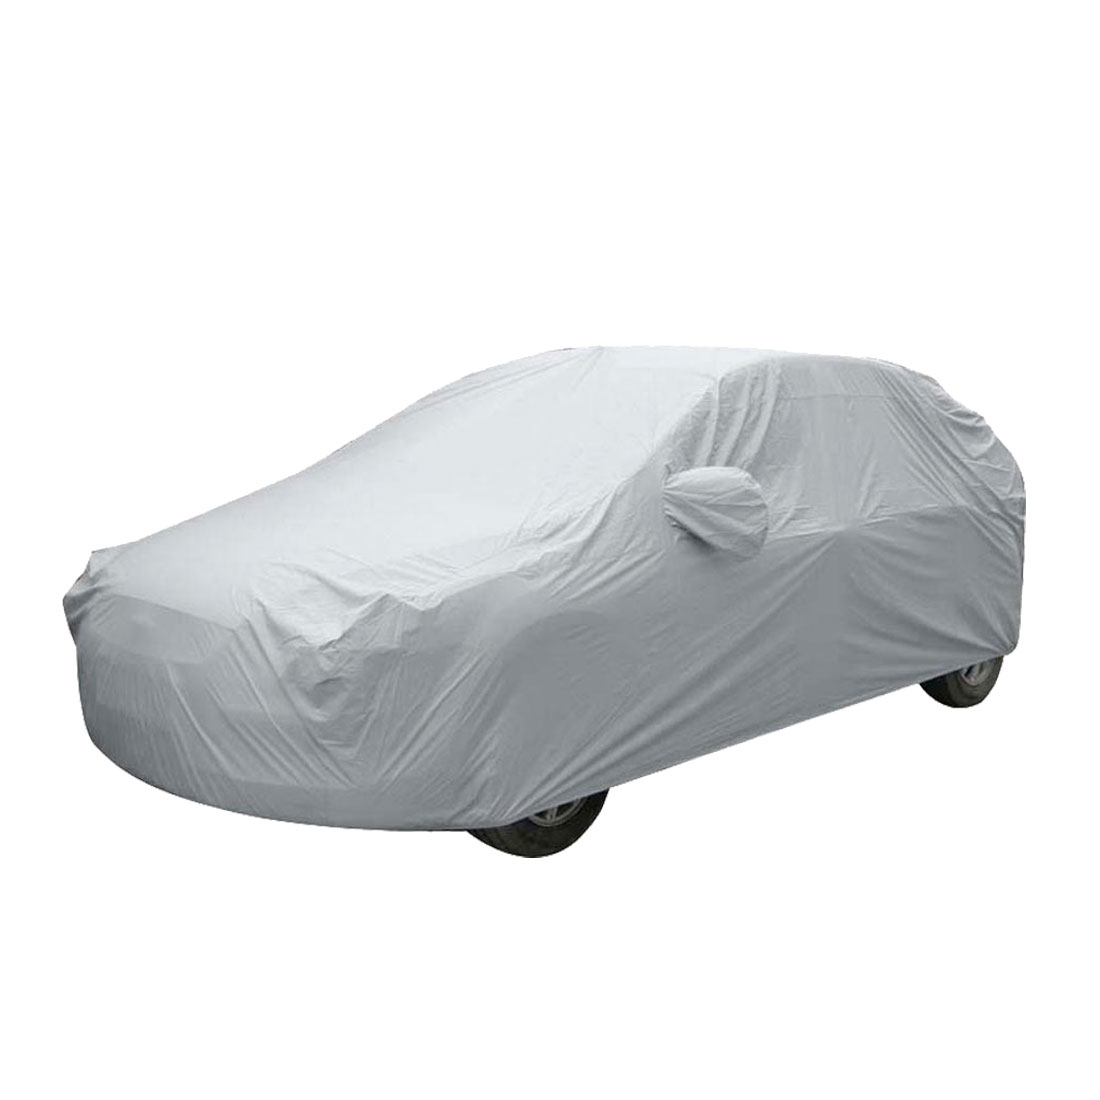 Outdoor Anti Dust Water Proof Sedan Car Cover Silver Tonefor BMW X5 X6